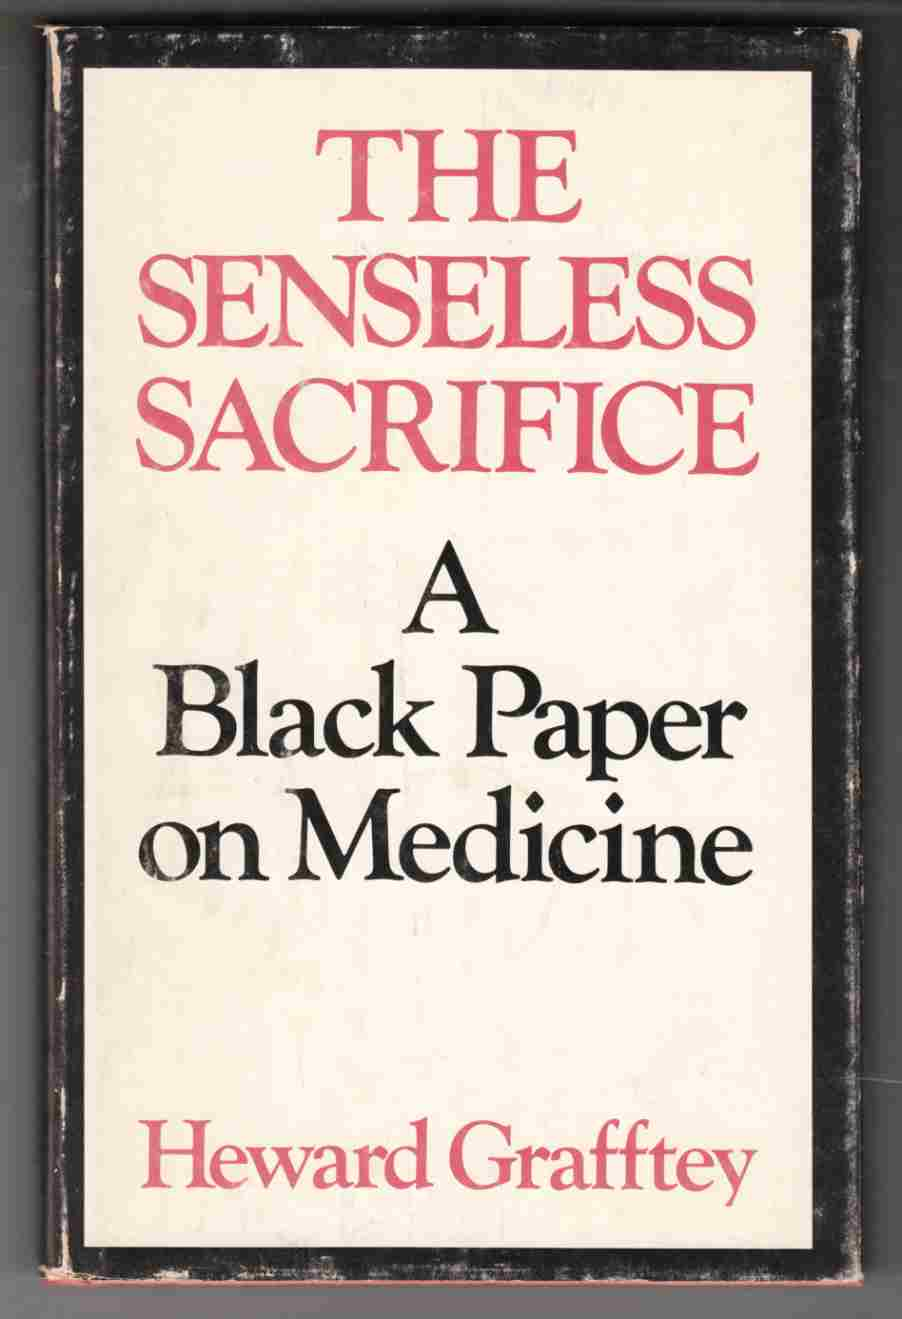 Image for The Senseless Sacrifice A Black Paper on Medicine